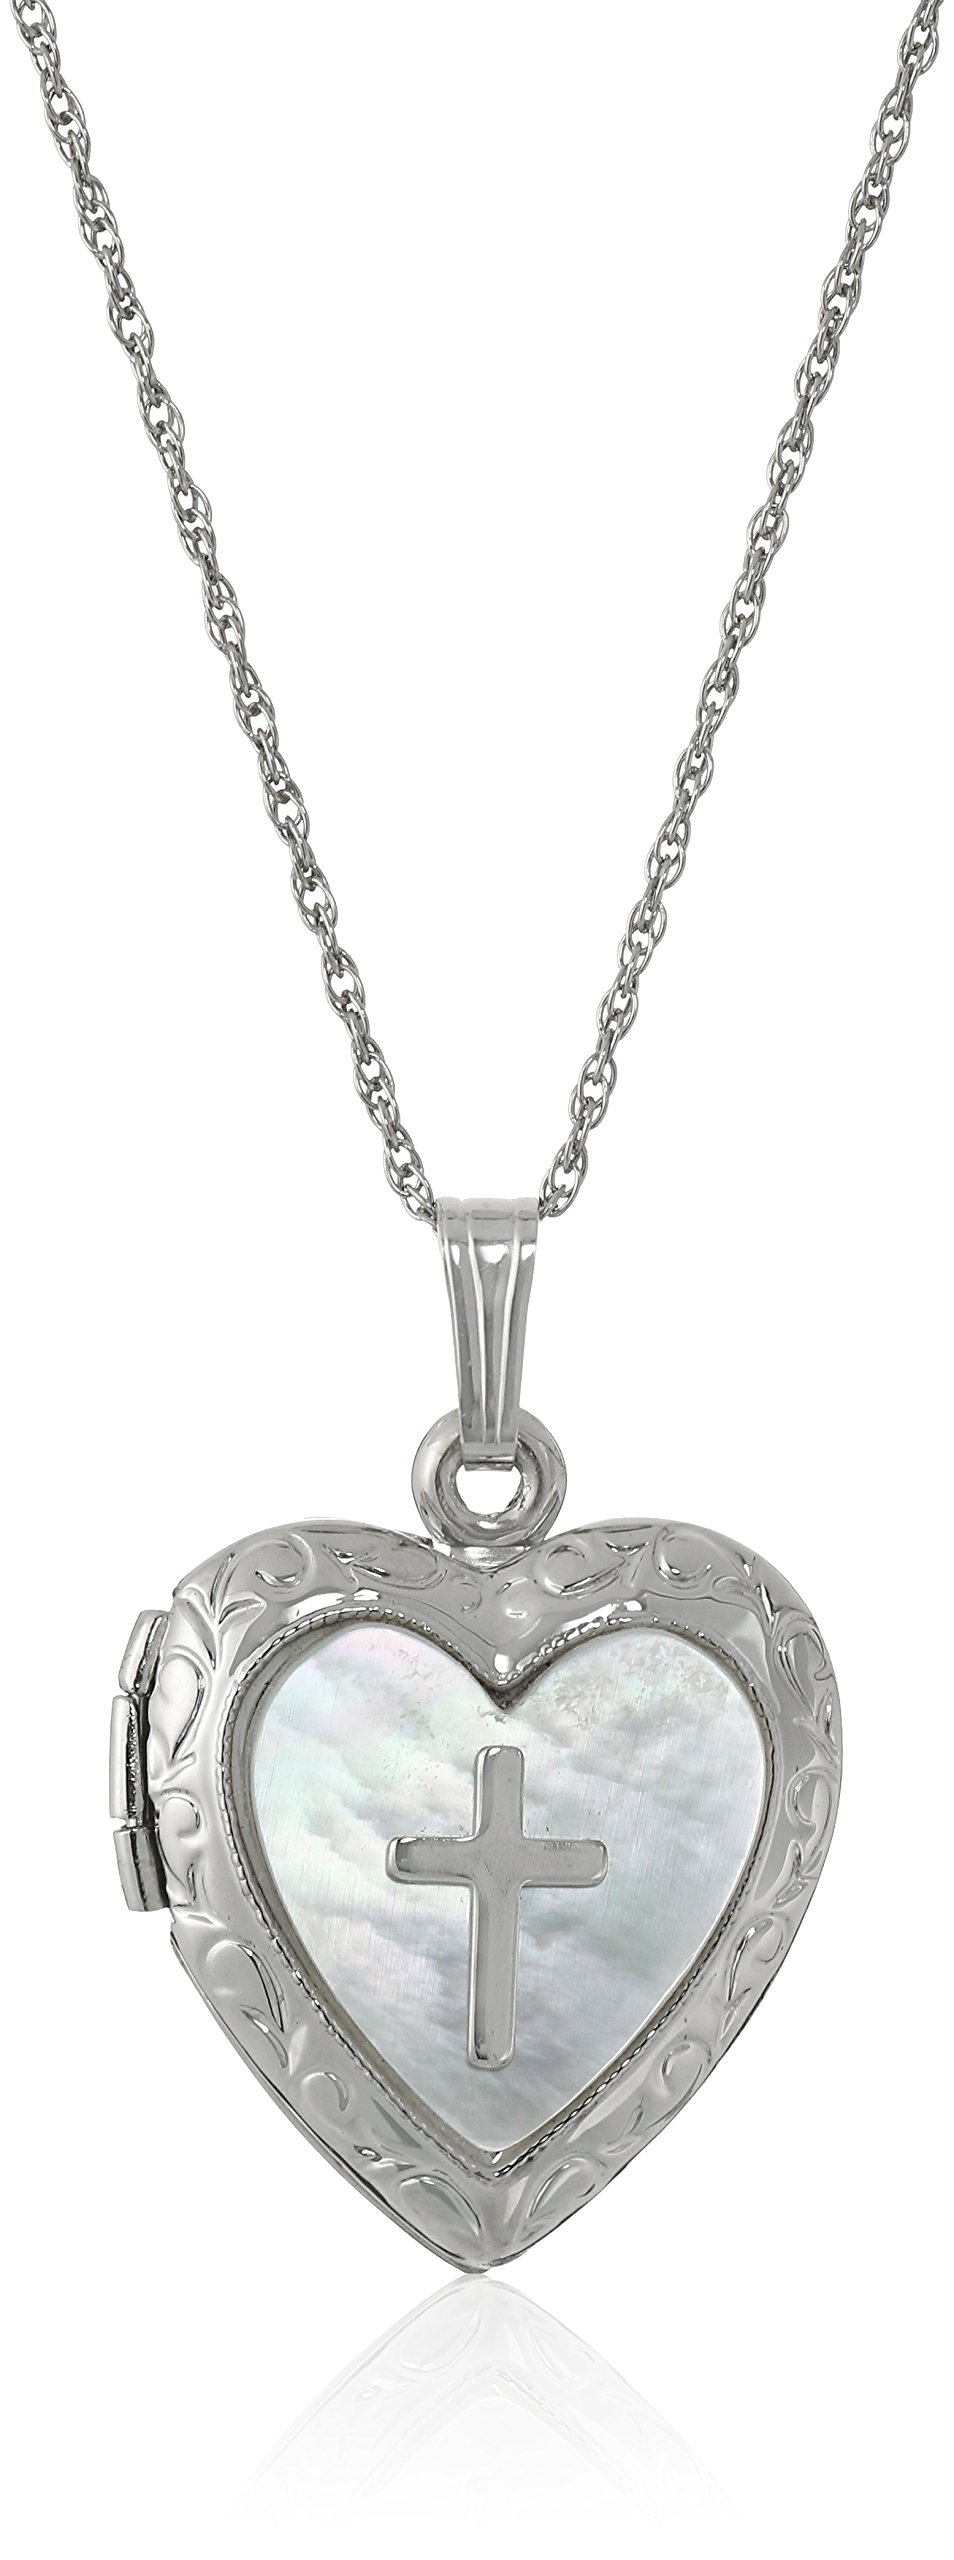 Sterling Silver Heart and Mother-of-Pearl Heart and Cross Locket Necklace, 18'' by Amazon Collection